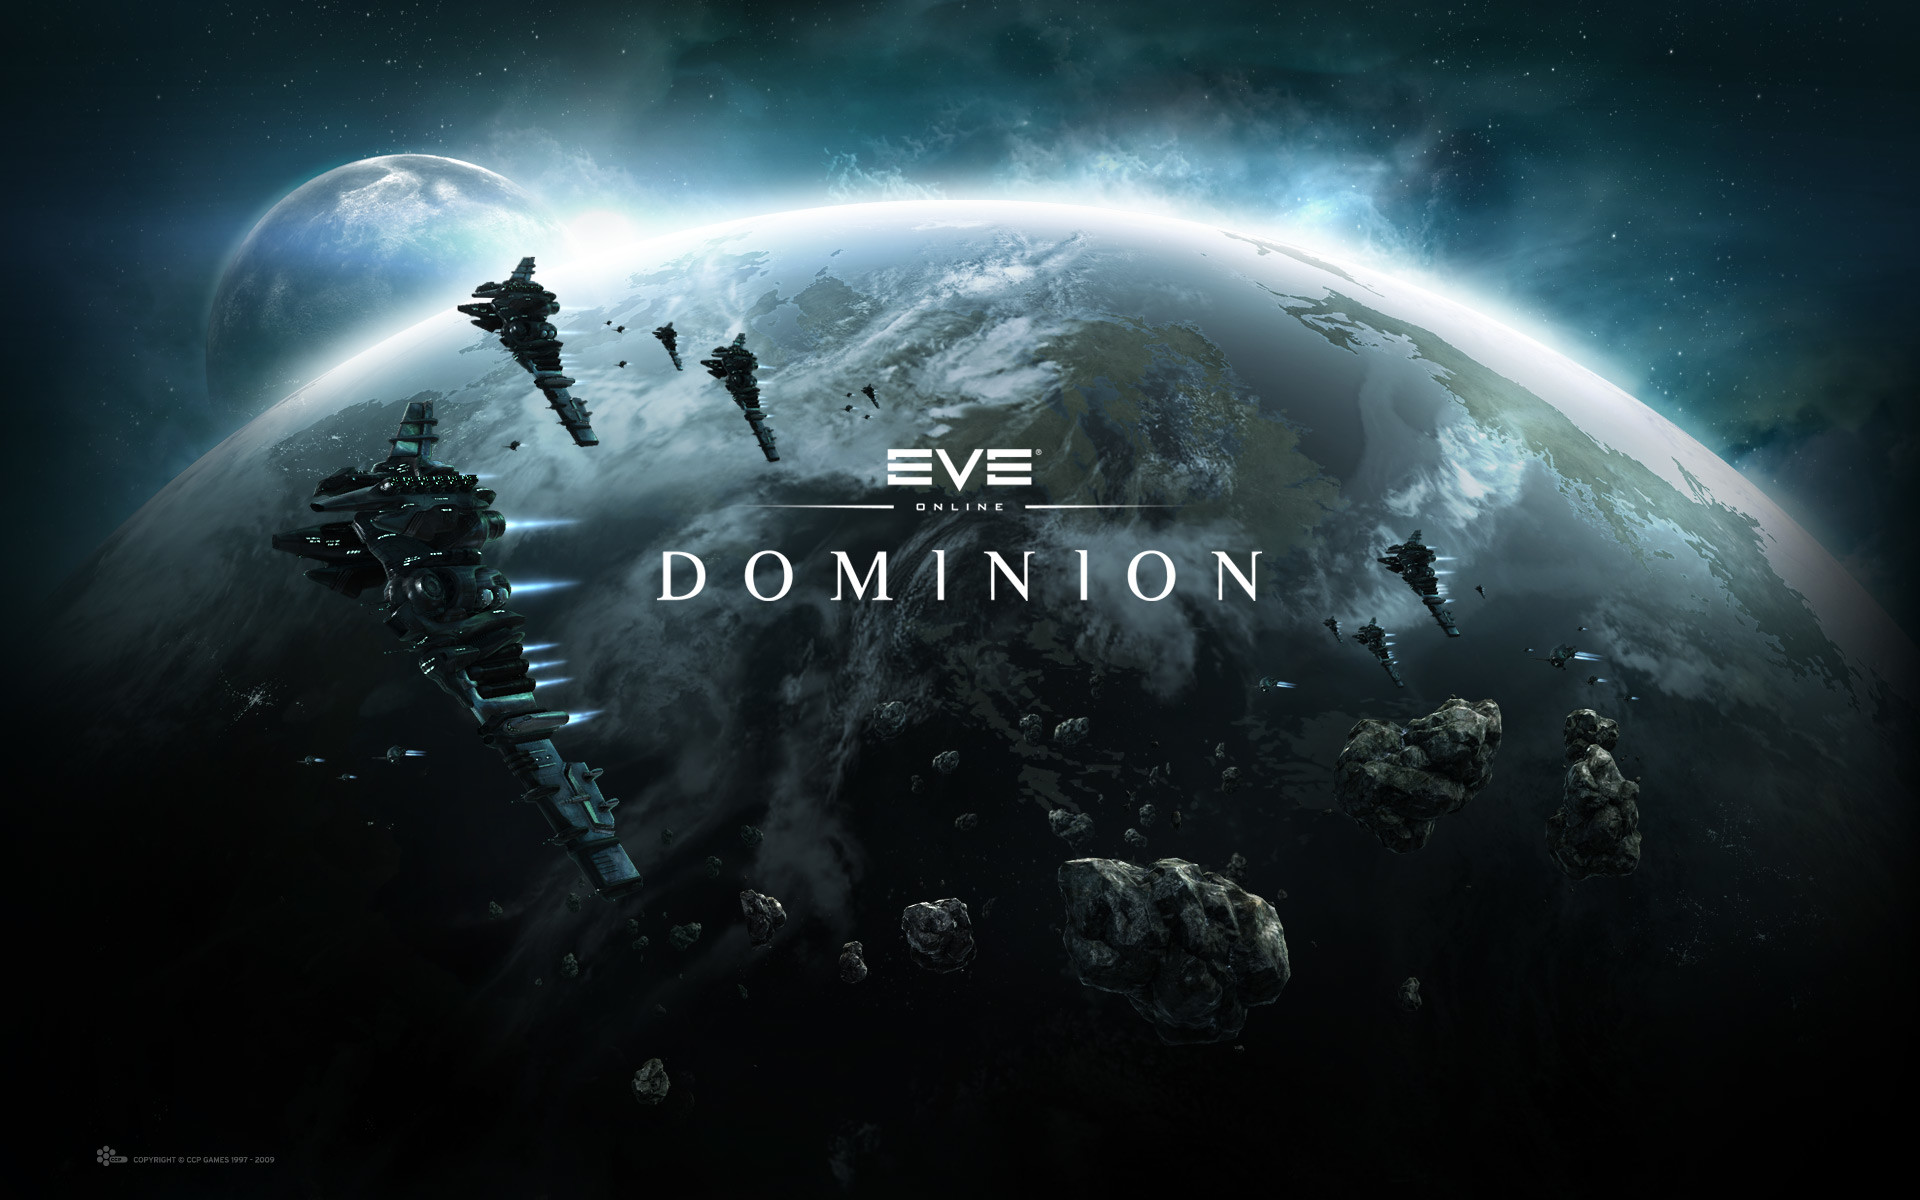 18 best Eve Online! images on Pinterest | Spaceships, Concept art and  Spacecraft